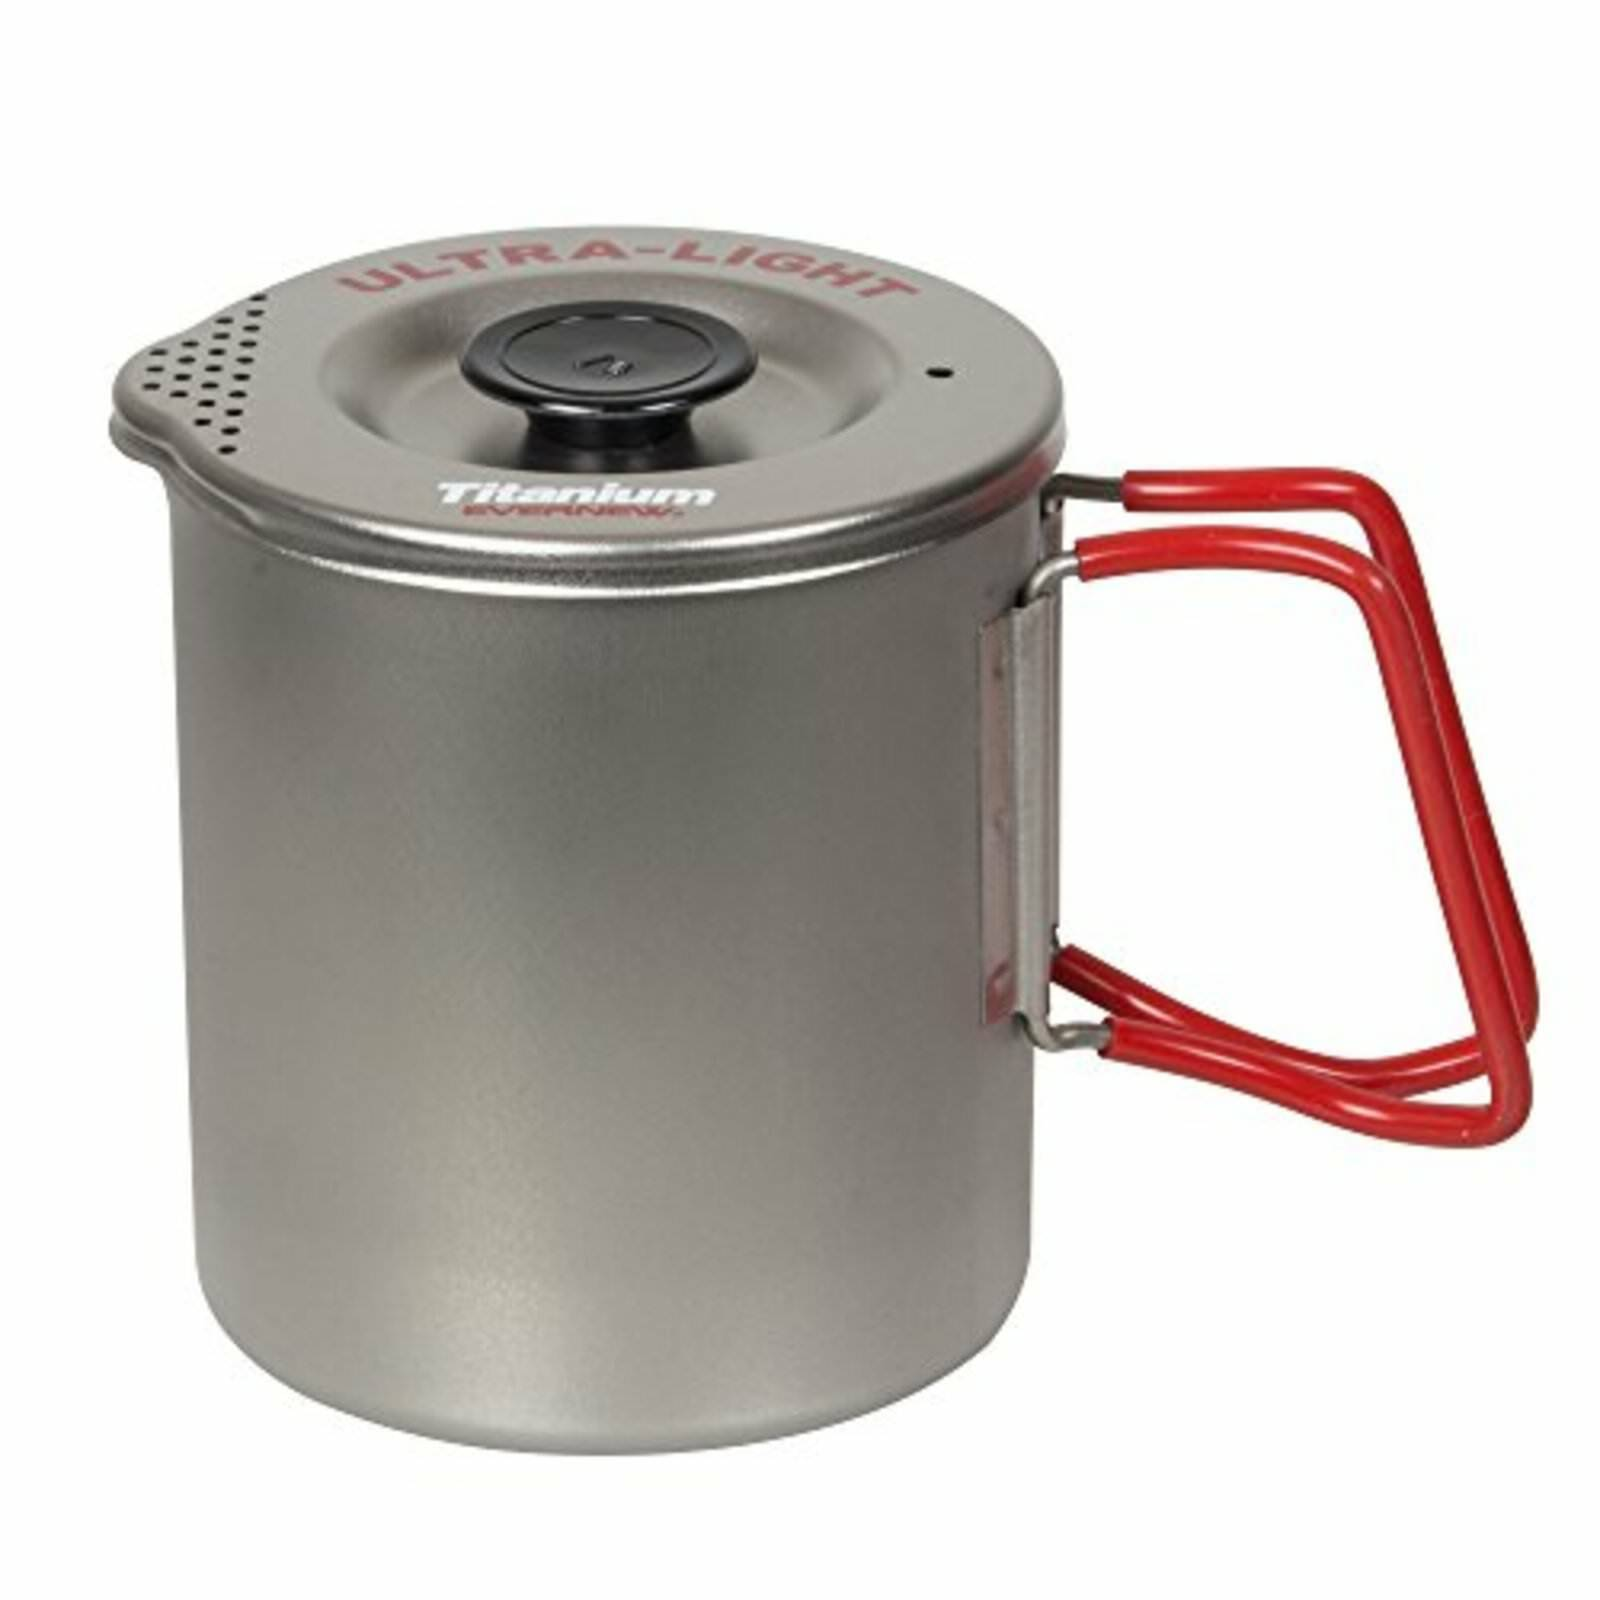 Evernew Titanium Pasta Pot Free Shipping with Tracking number New from Japan